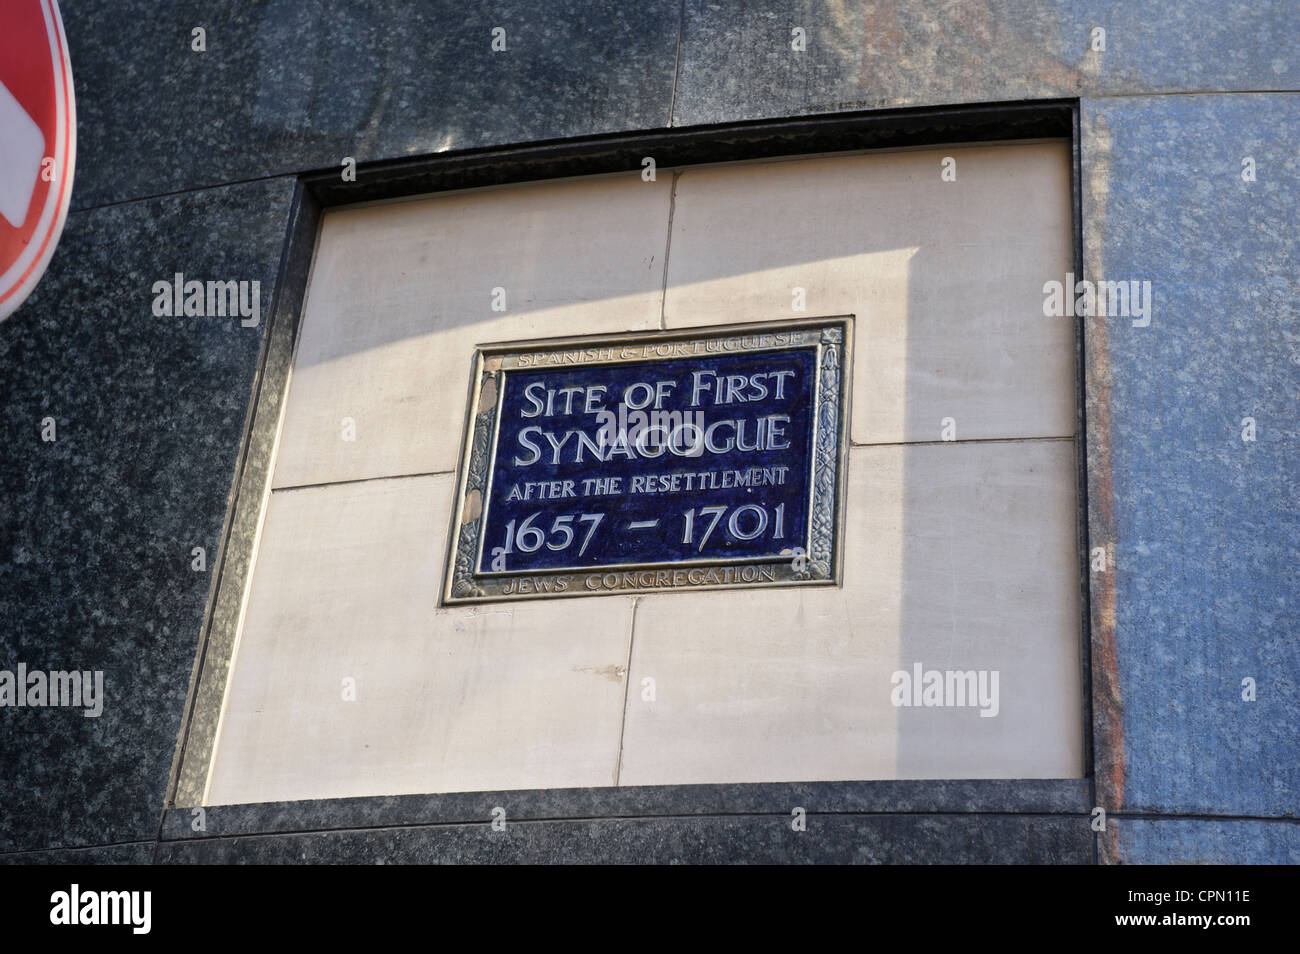 Plaque making first Synagogue site, London, United Kingdom. - Stock Image